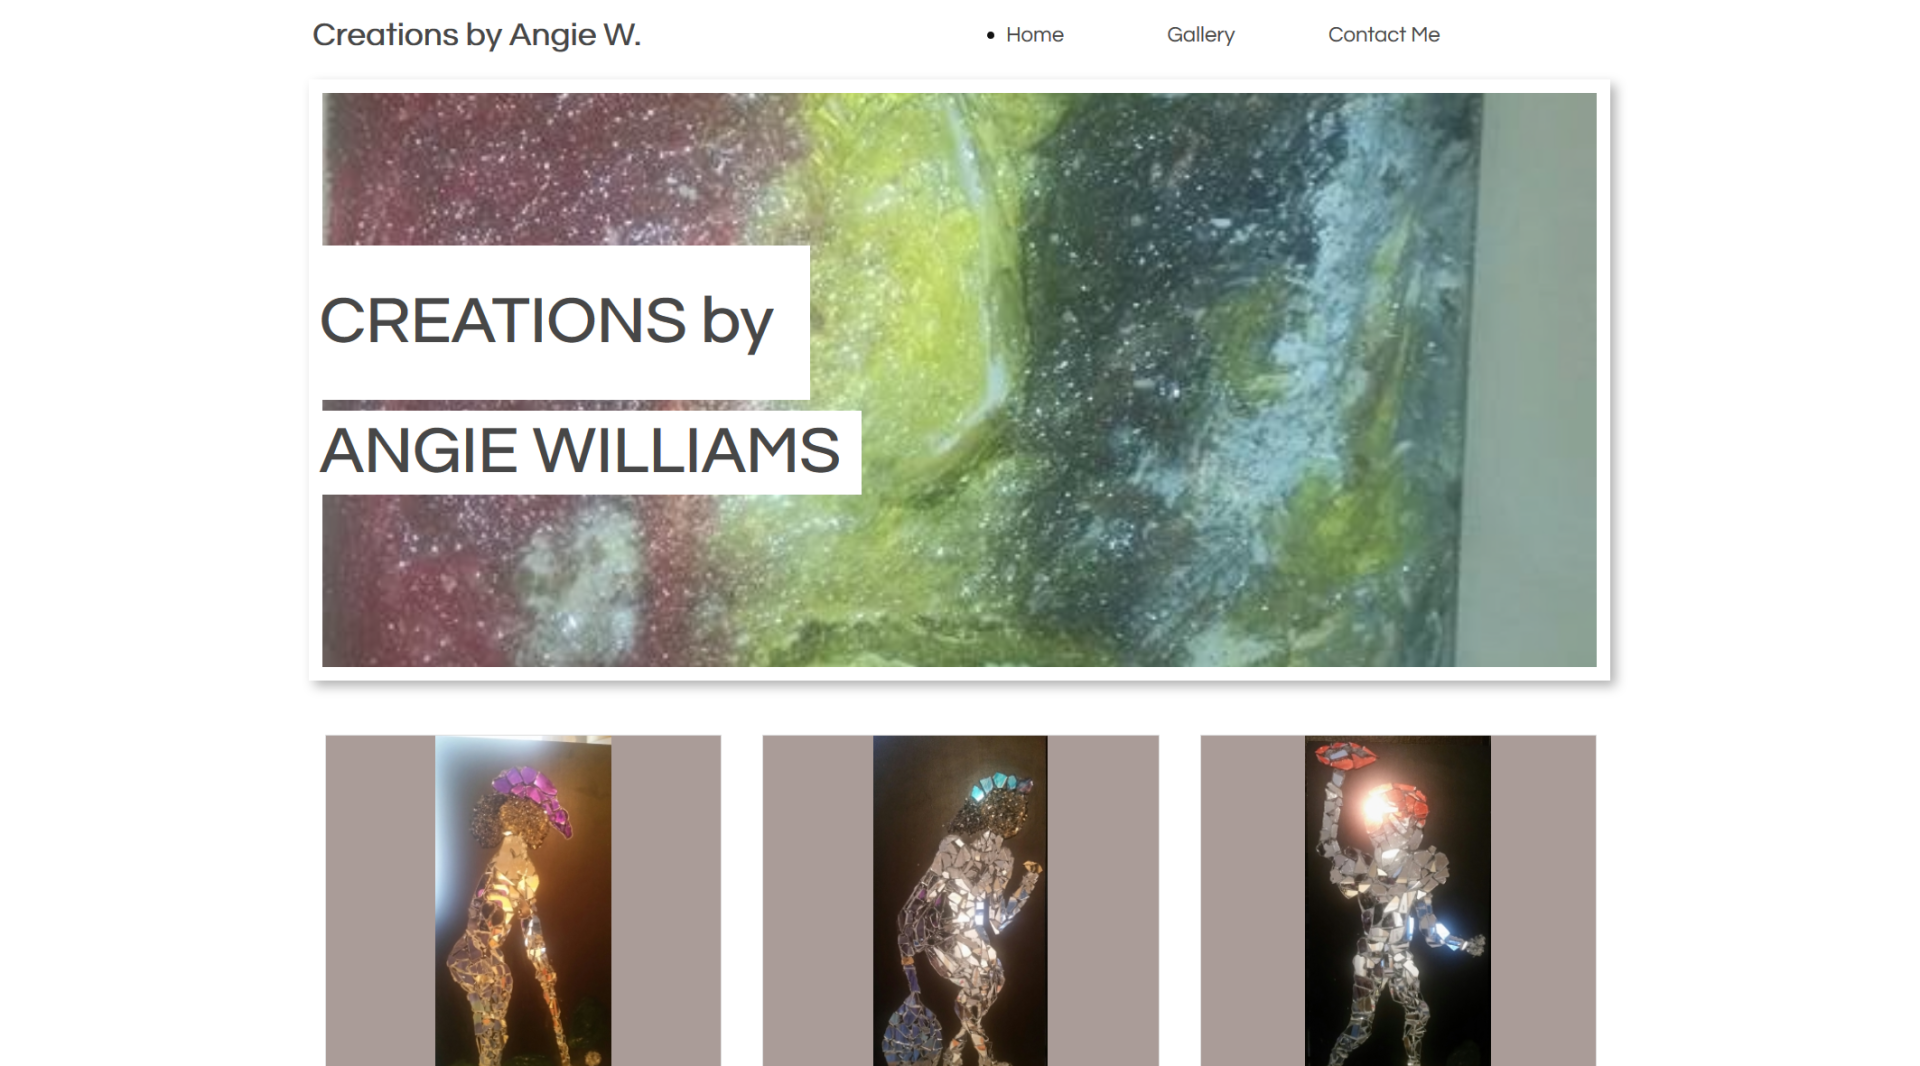 Creations by Angie Williams